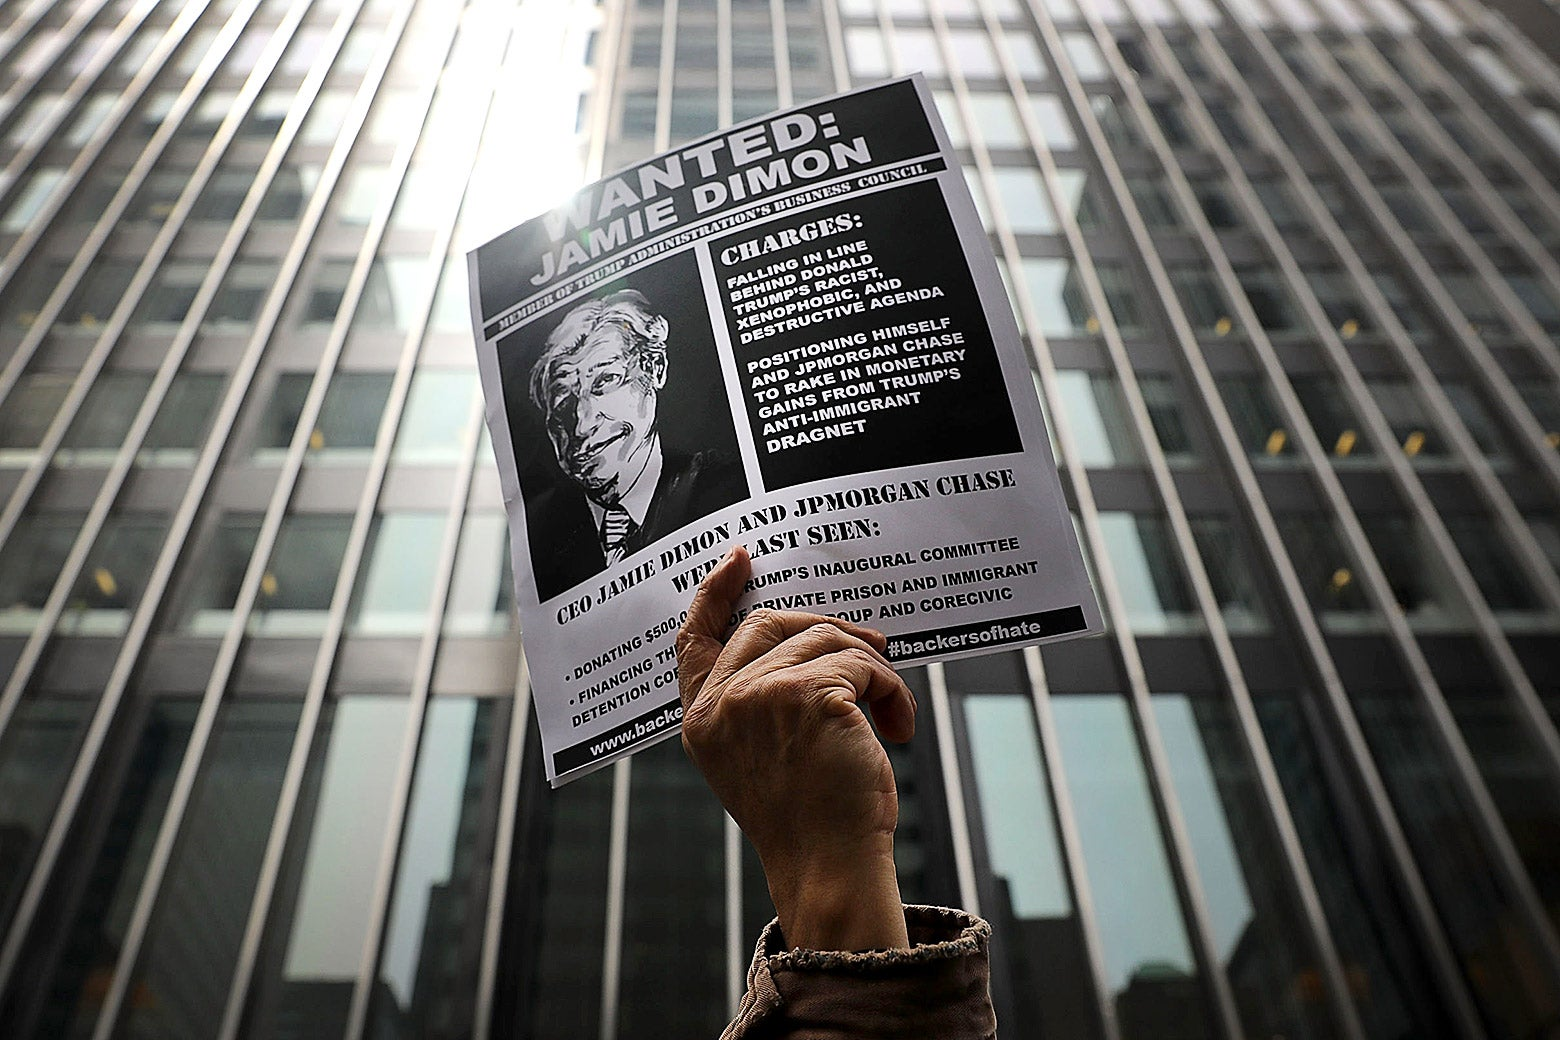 A mockup of a wanted poster for JPMorgan CEO Jamie Dimon is held outside his apartment in New York City.